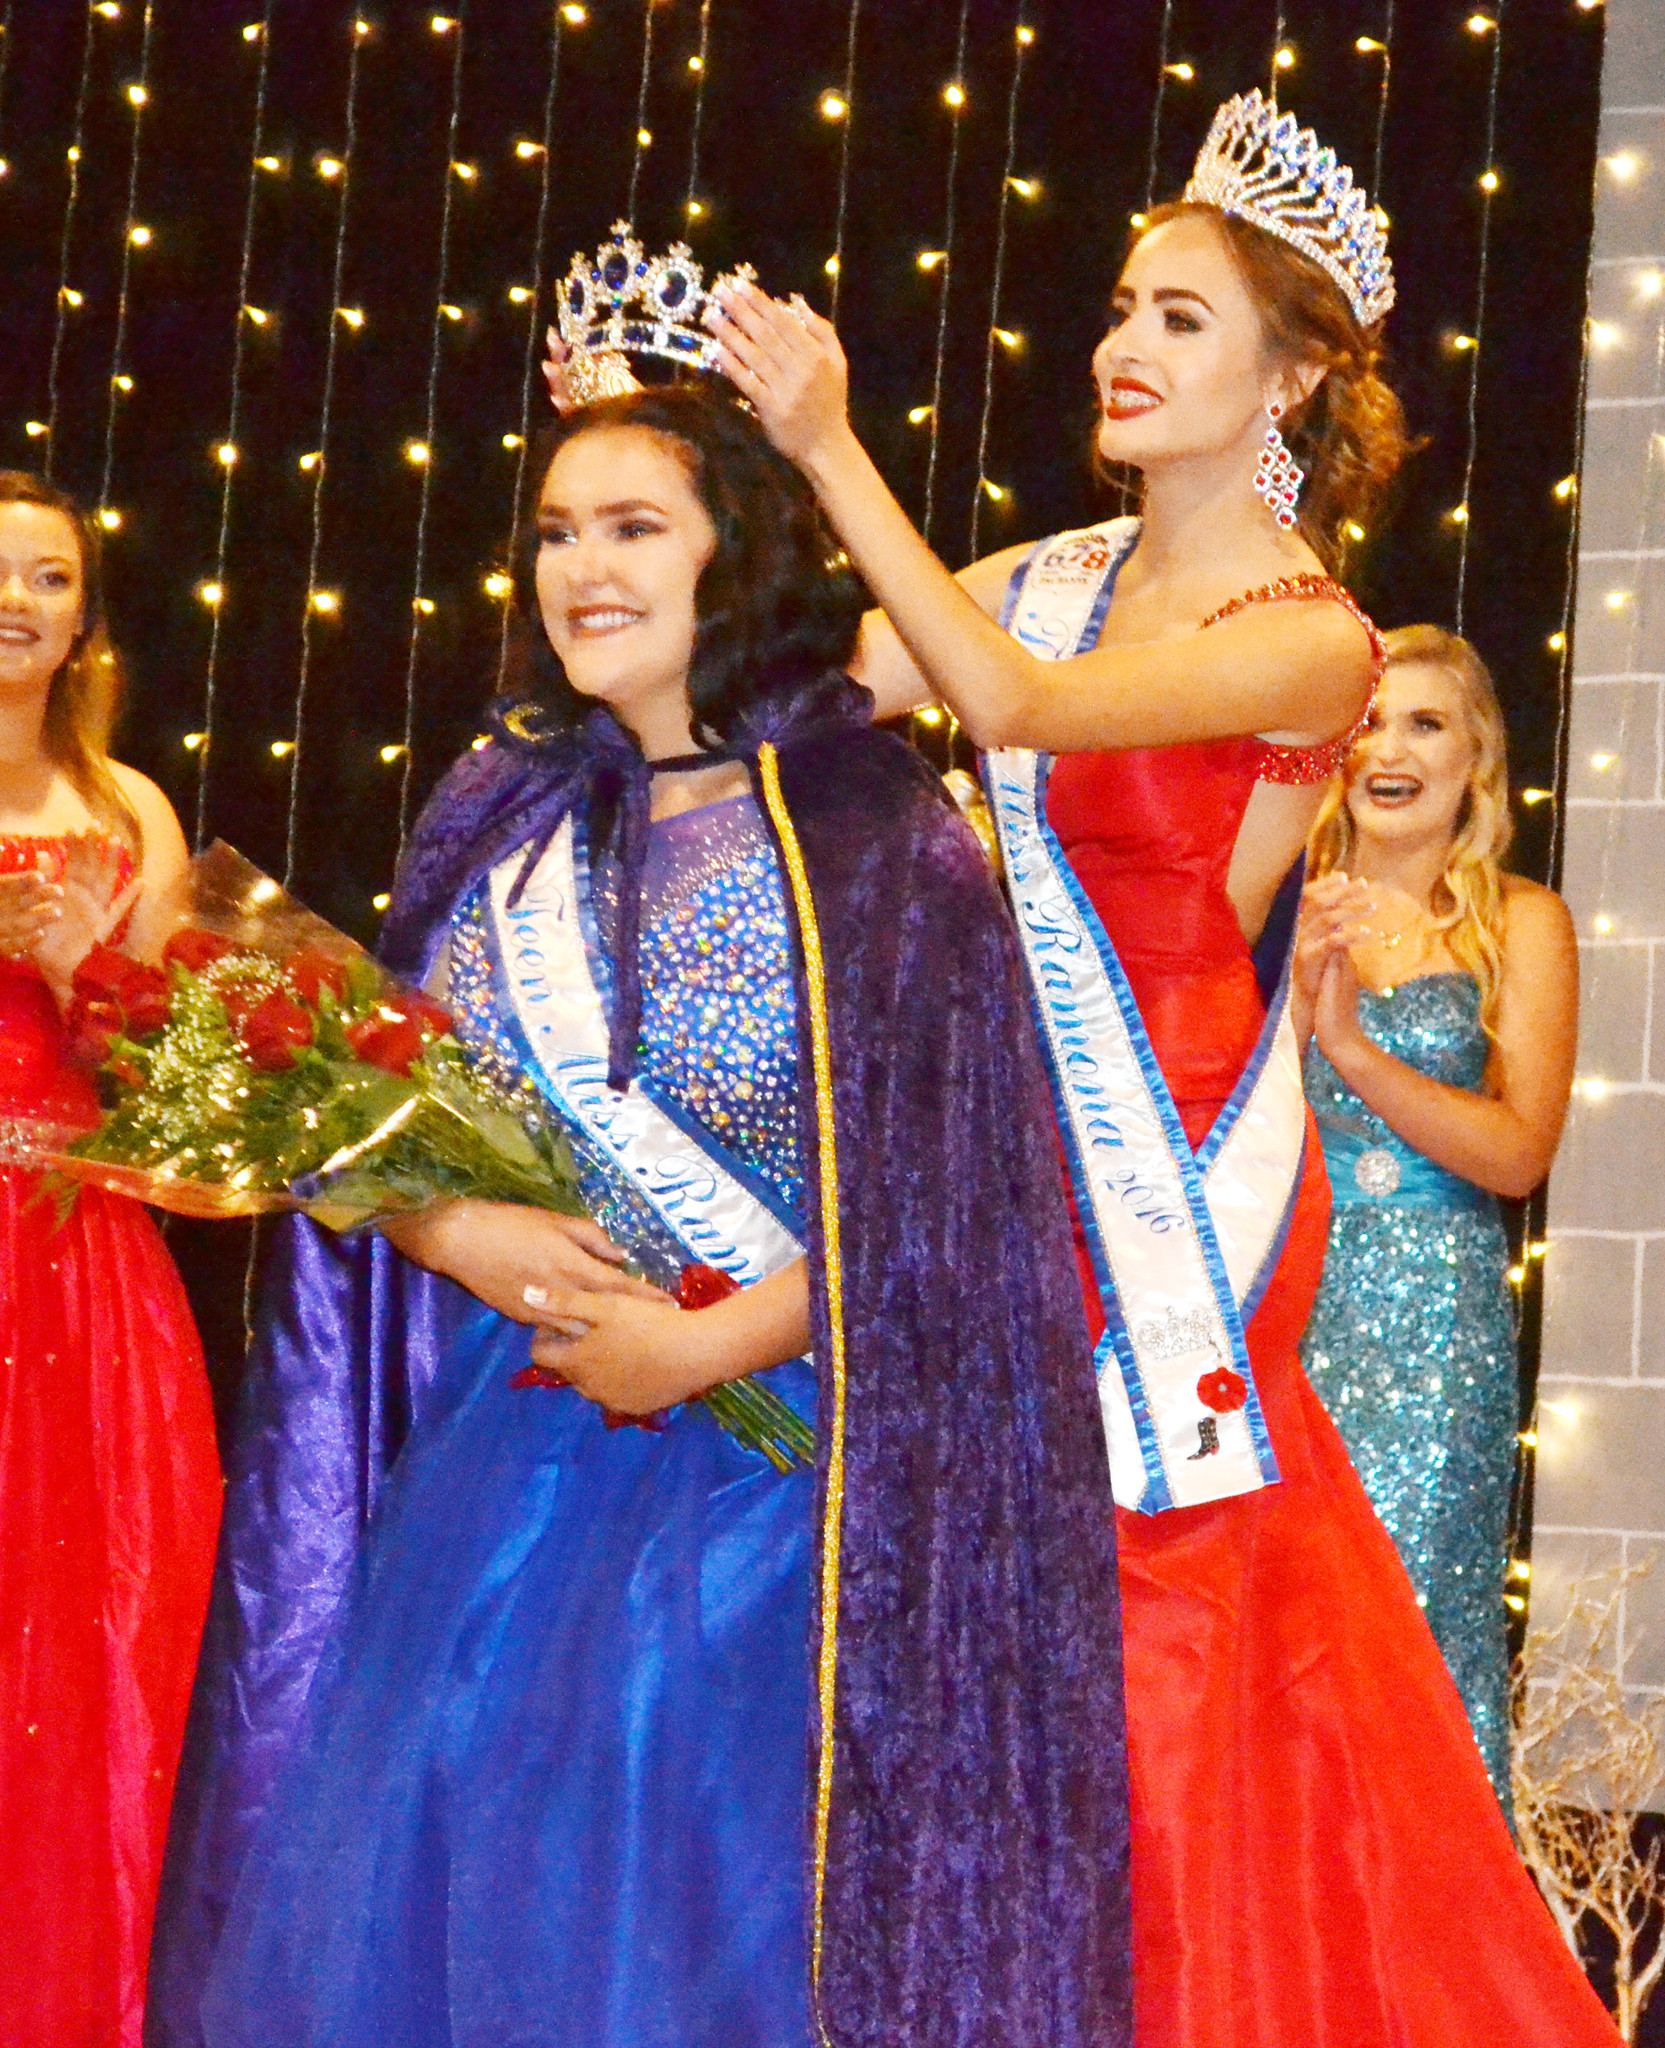 Cheyenne DePhillippis is crowned Teen Miss Ramona 2017 by last year's Teen Miss Ashley Dominguez.